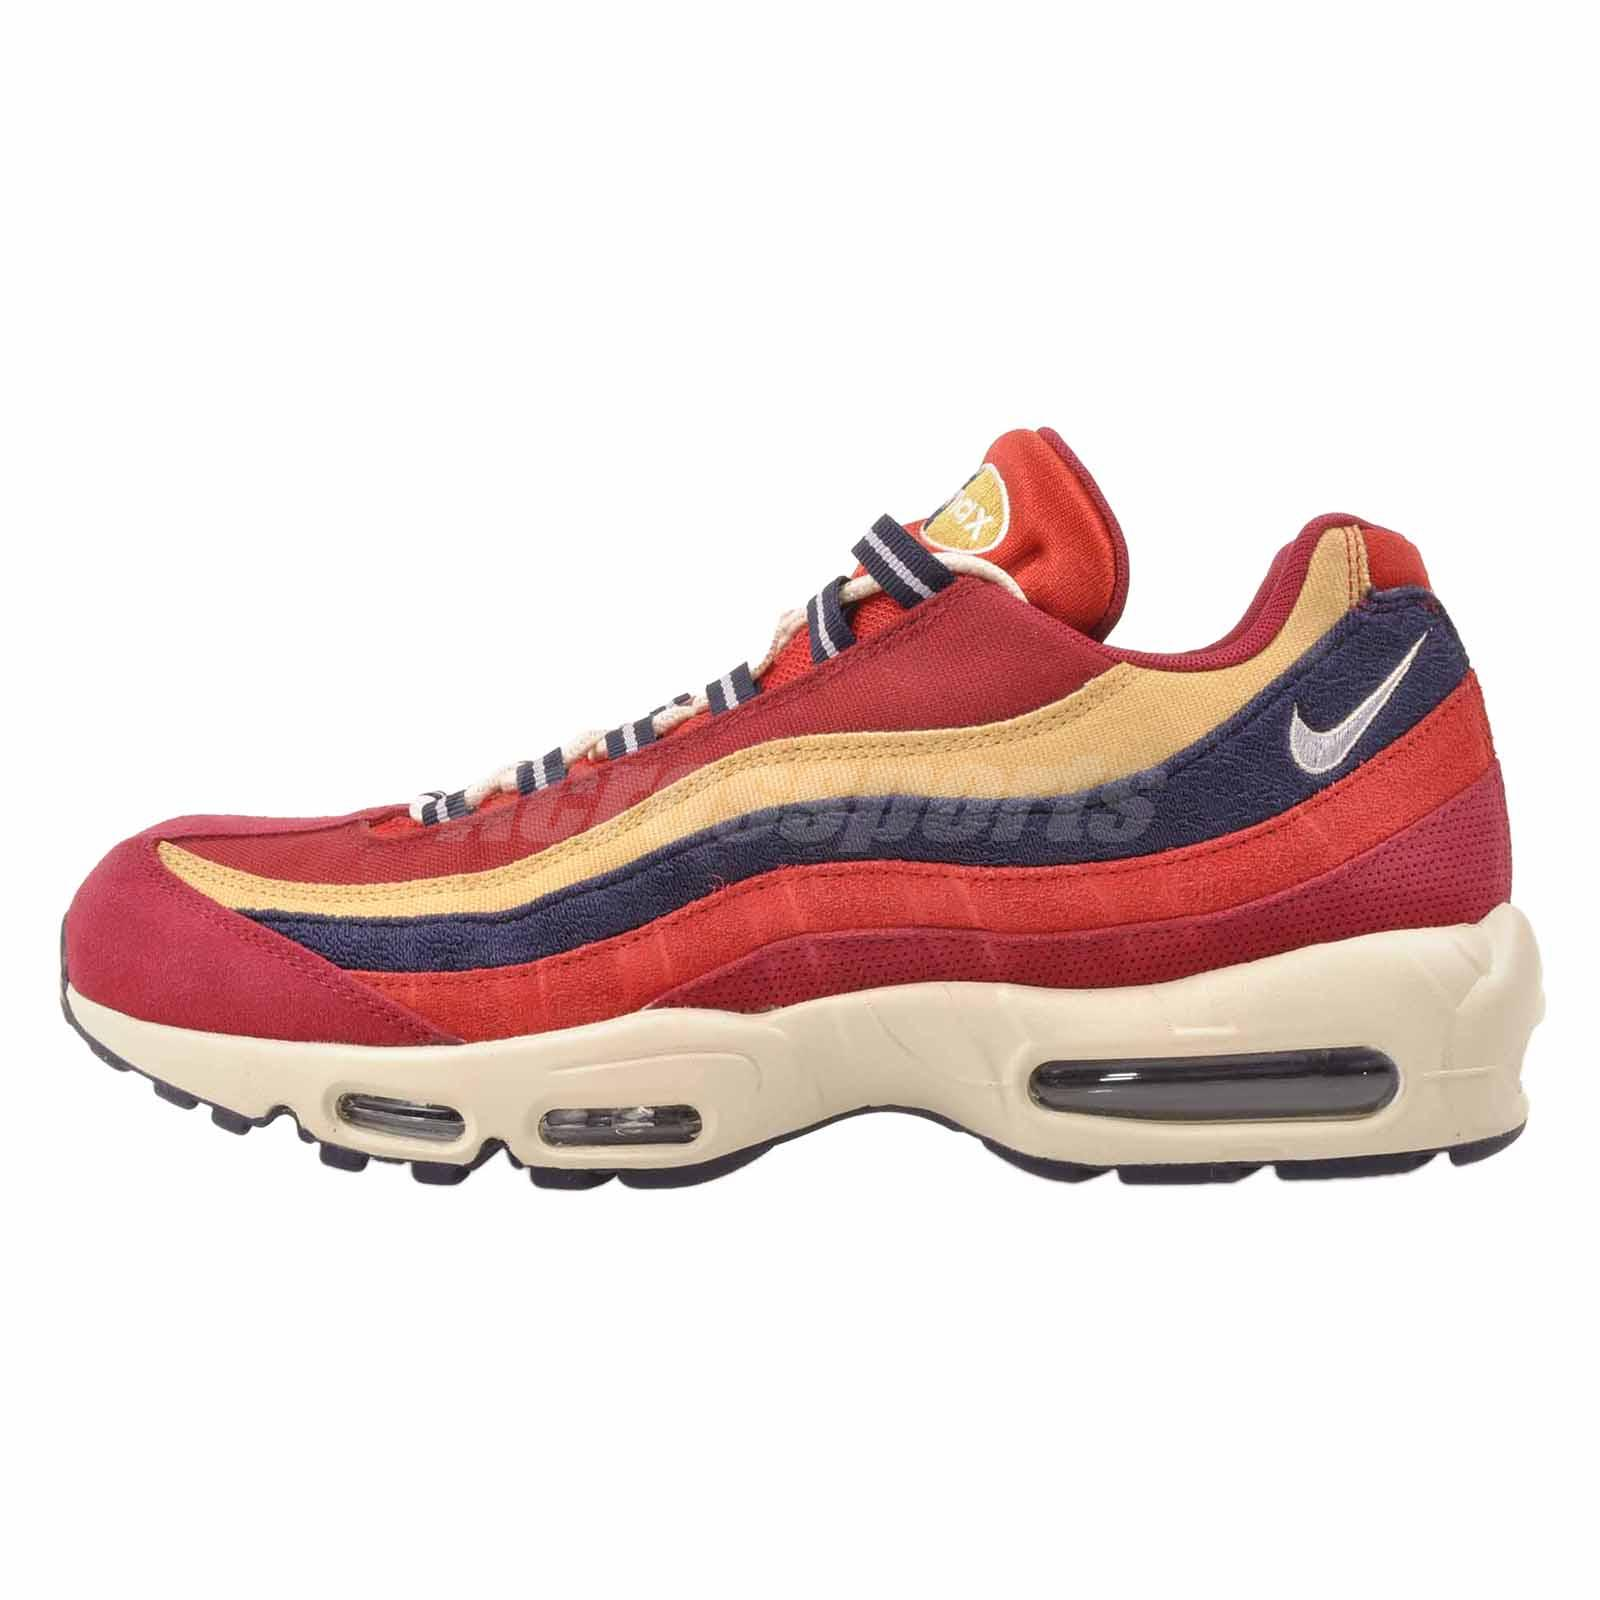 a0d491bc93f7 Details about Nike Air Max 95 PRM Running Mens Premium Shoes NWOB Red  538416-603